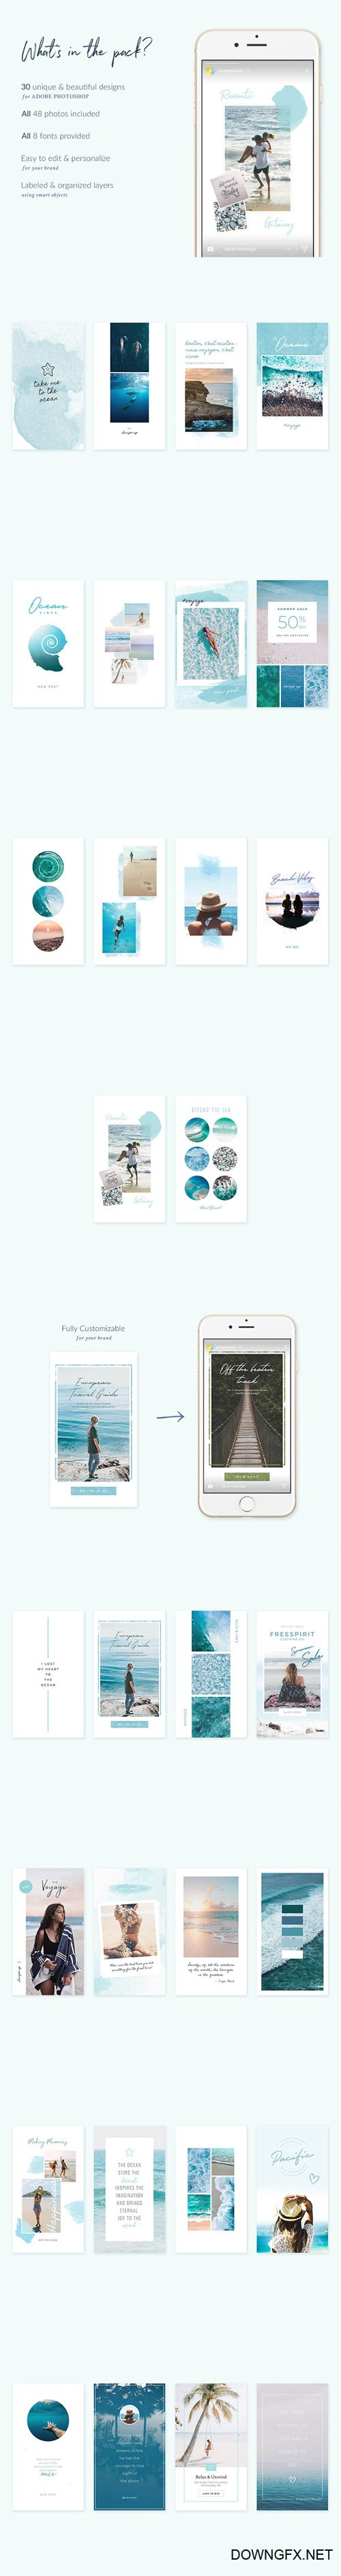 Oceans Instagram Stories - 30 Beautiful Instagram Story templates designed in Photoshop